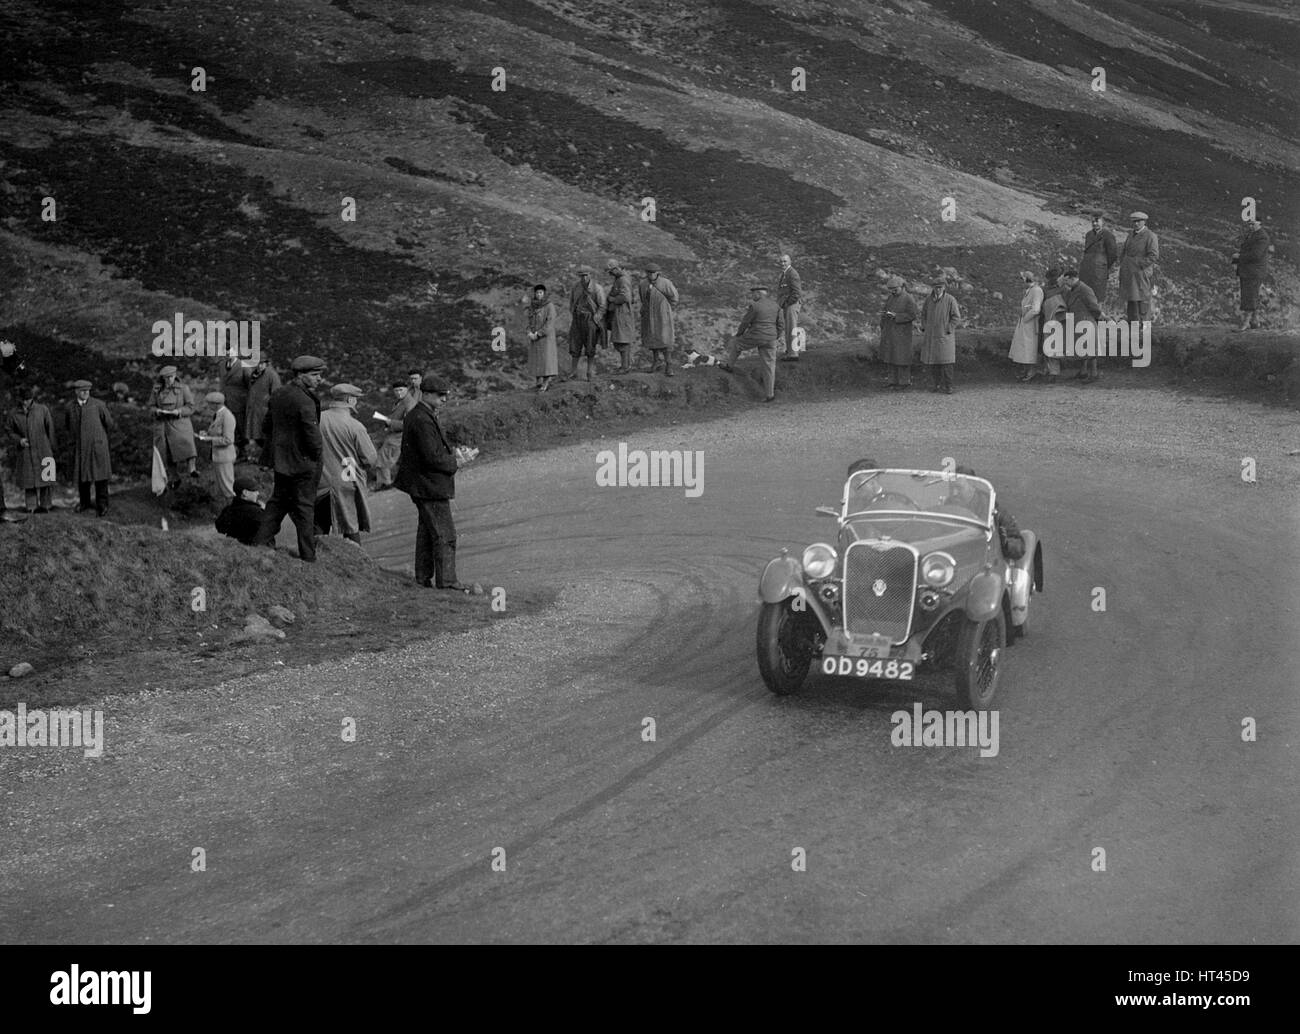 Singer Le Mans competing in the RSAC Scottish Rally, Devil's Elbow, Glenshee, 1934. Artist: Bill Brunell. - Stock Image